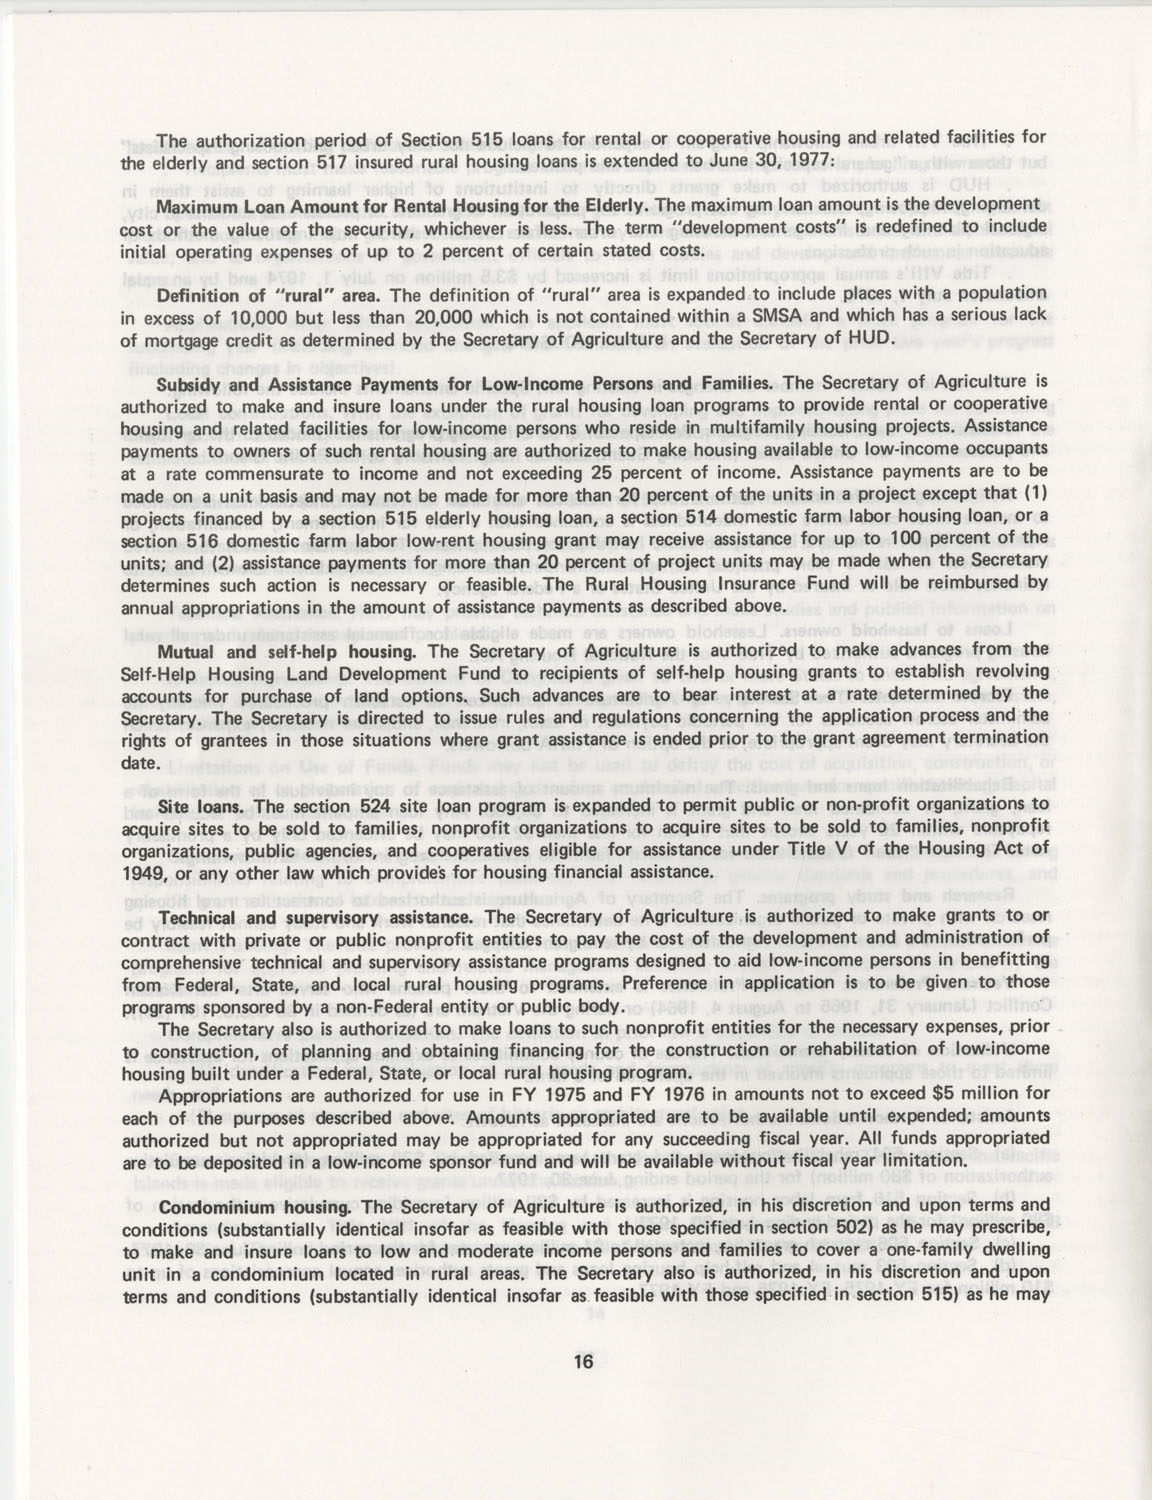 Summary of the Housing and Community Development Act of 1974, Page 16